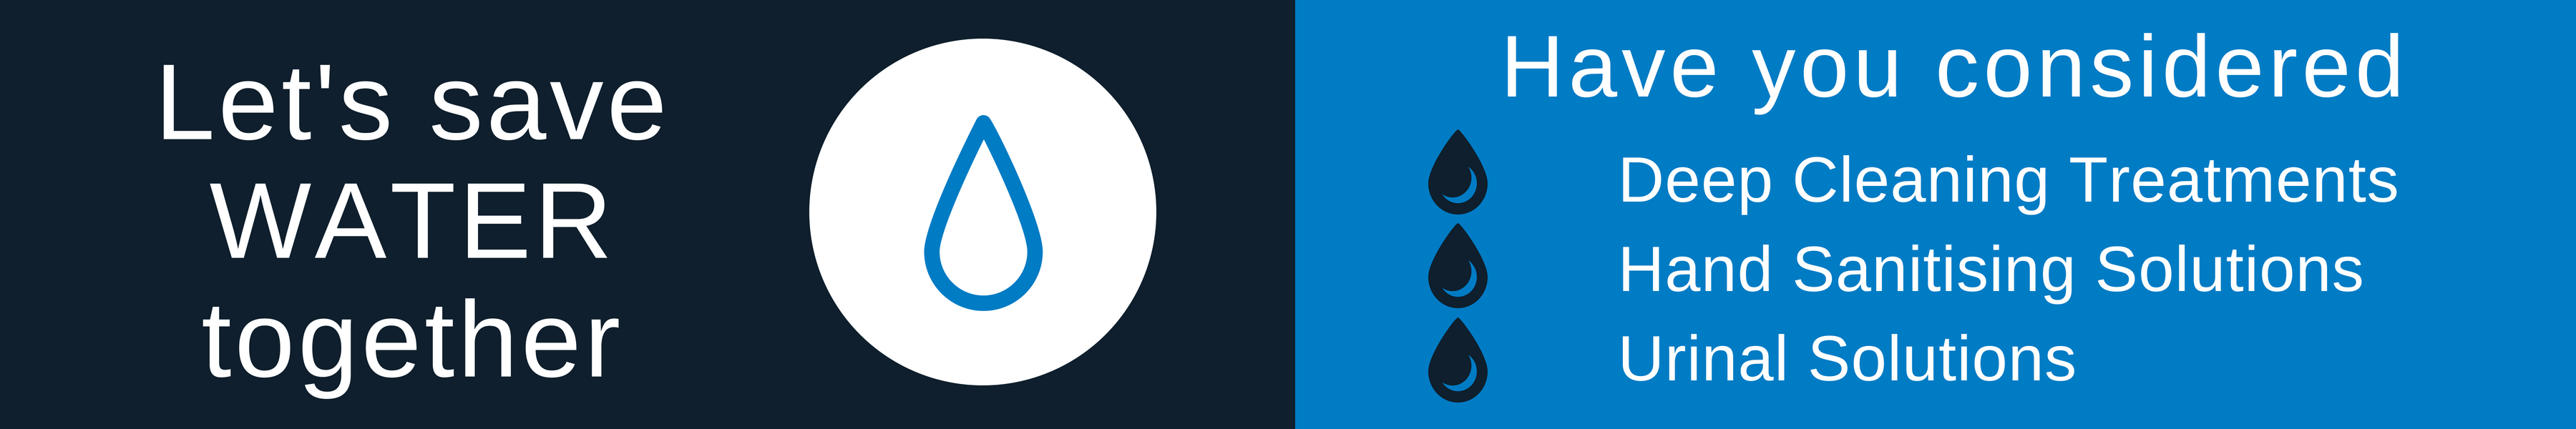 ZA _ Initial _ LP Content _ Banner _ Business Water Wise Banner for Saving water LP-1